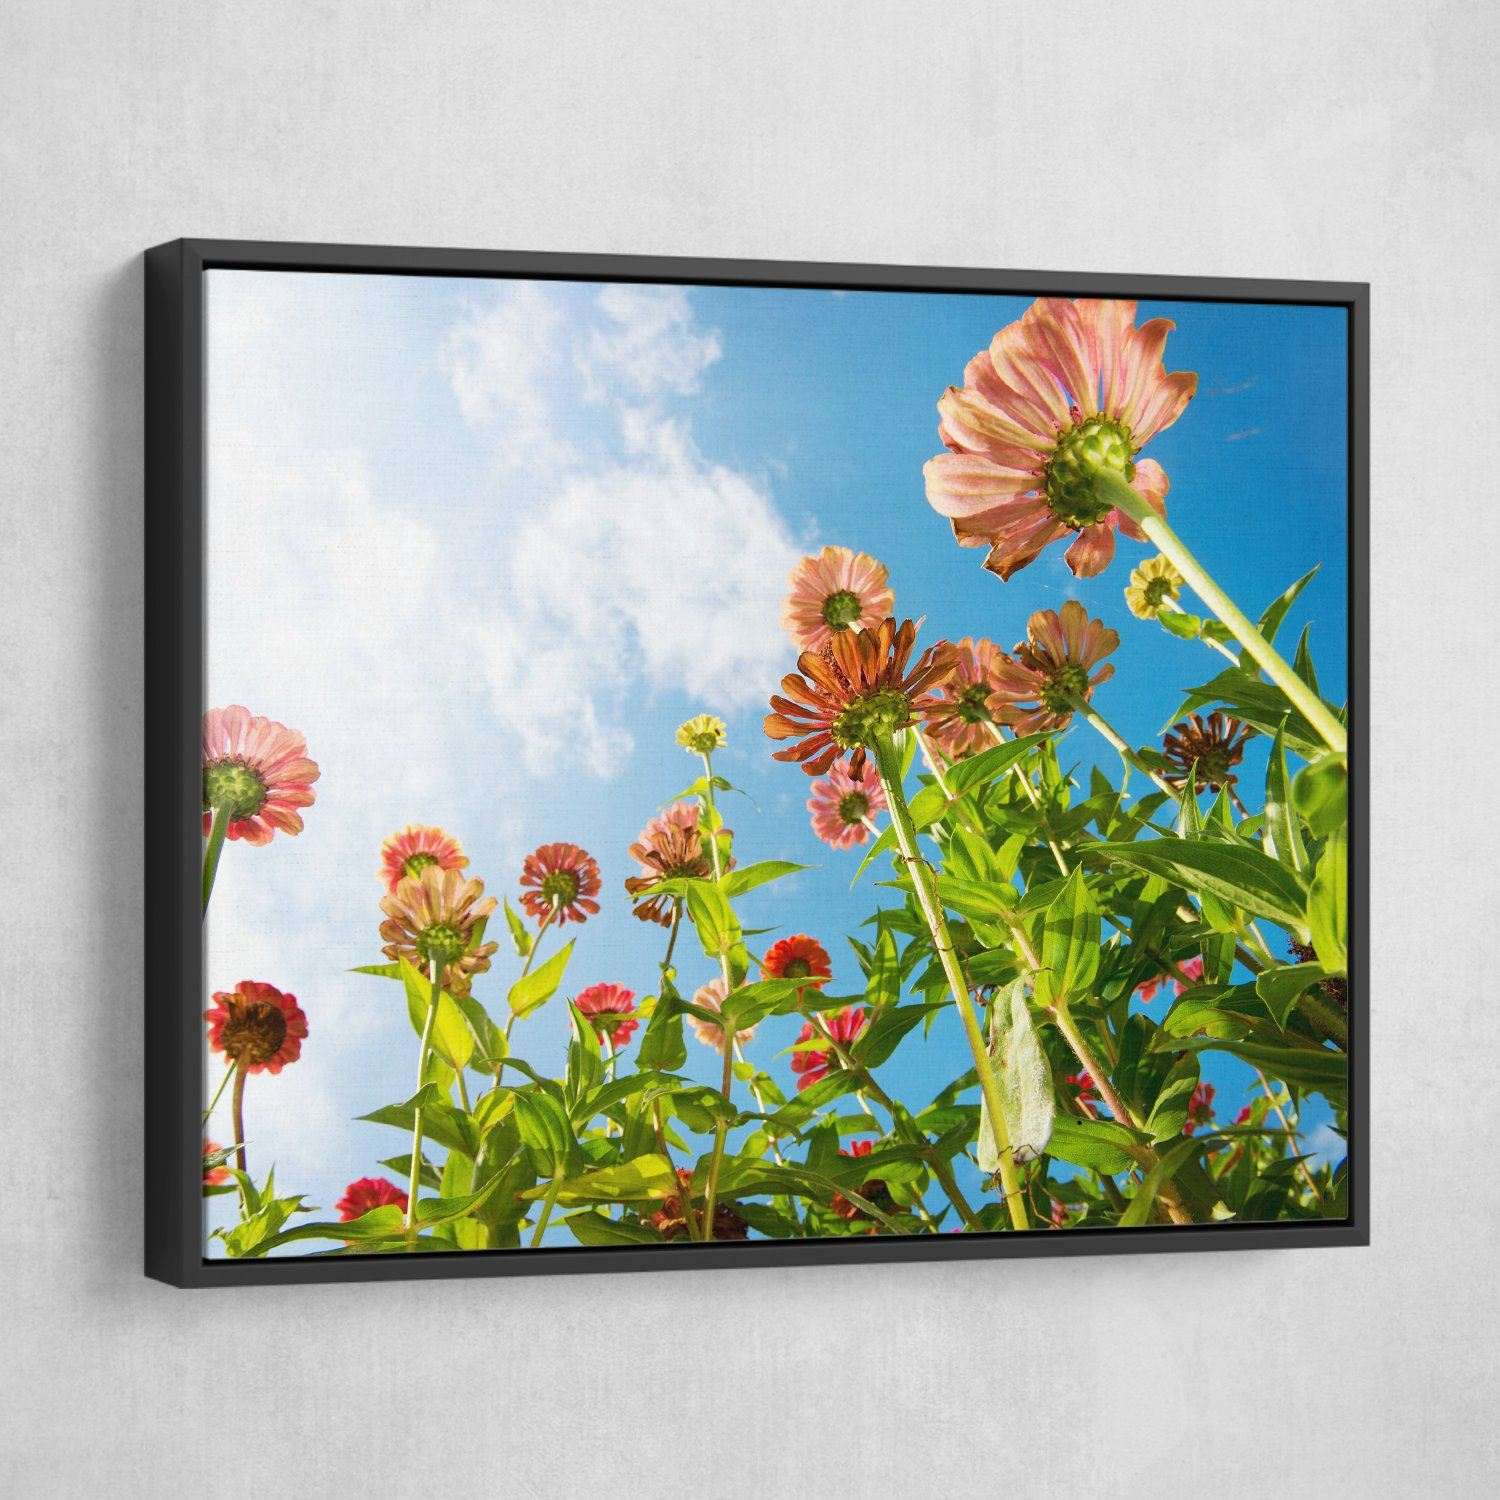 Flowers Over Blue Sky wall art black frame